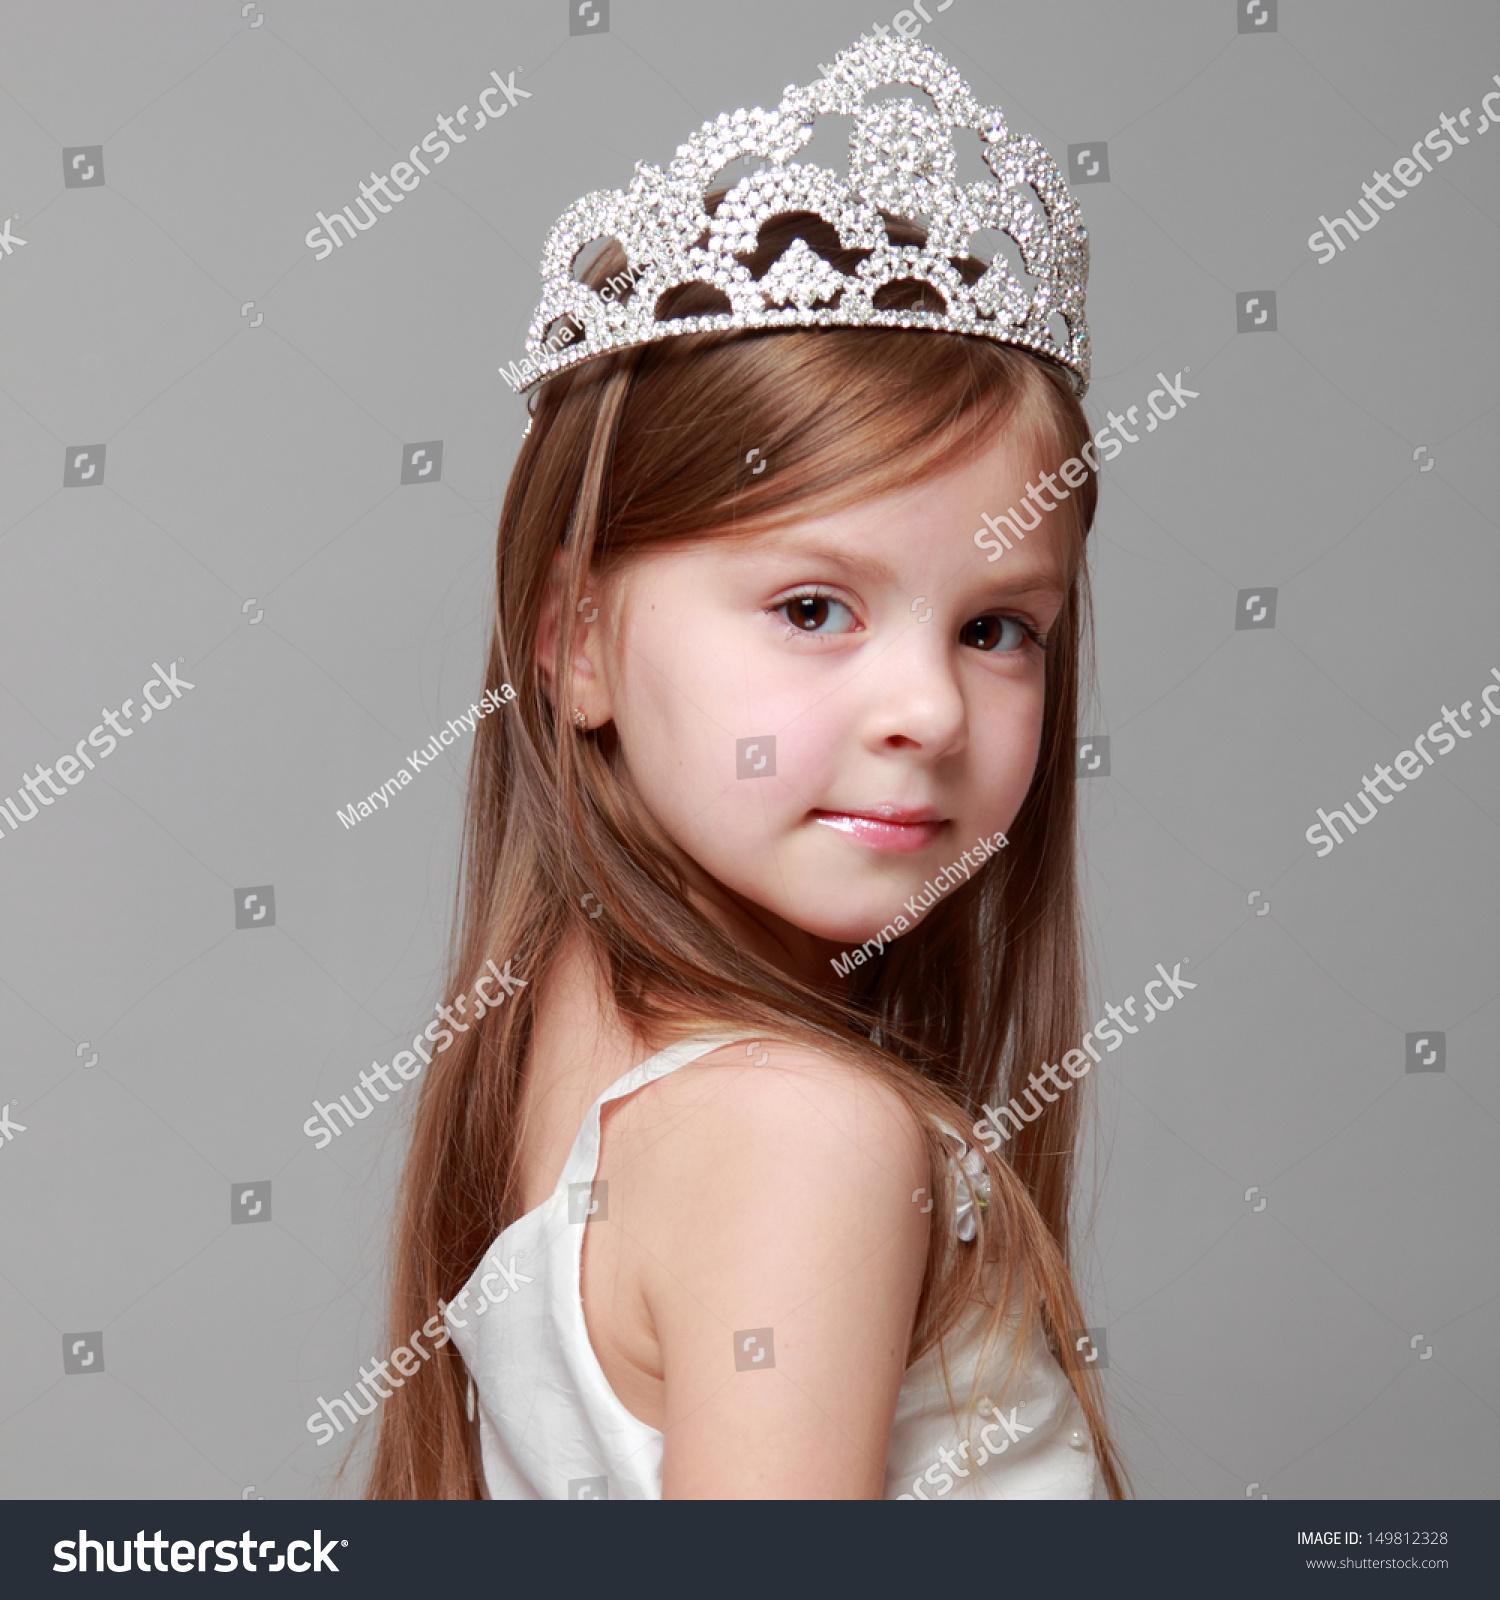 young girl wearing crown white dress stock photo (edit now